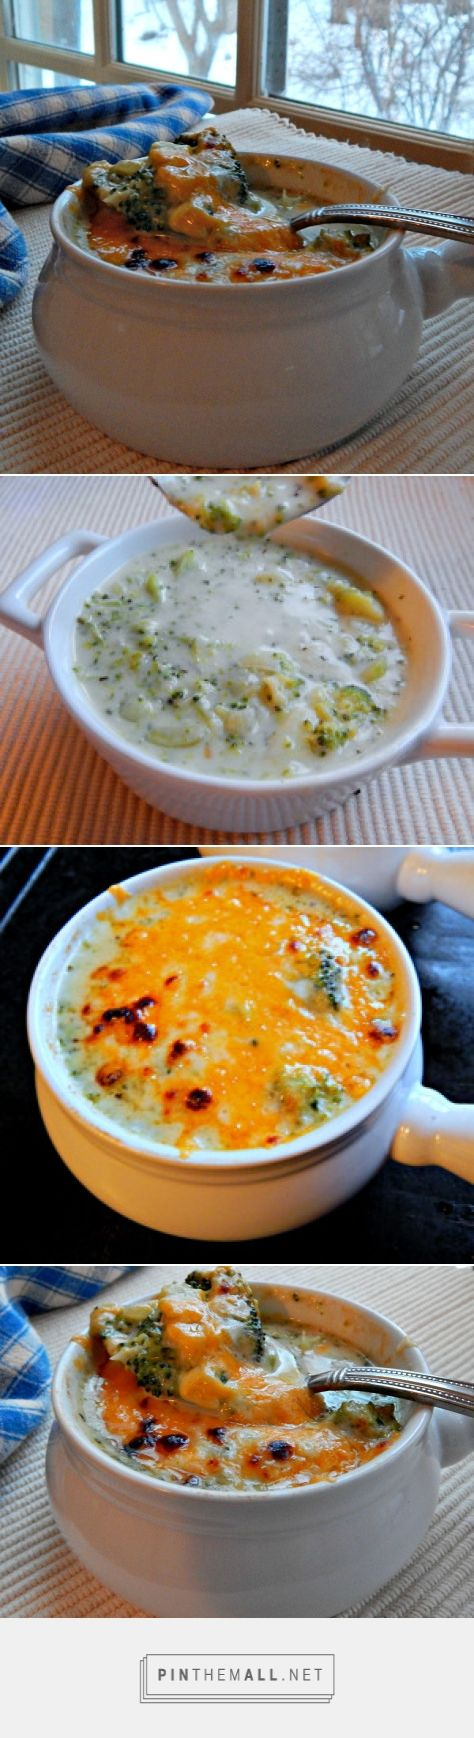 Russell's Cream of Broccoli Soup with Cheddar Crust | Frugal Hausfrau An out of this world fantastic Broccoli soup, originally from Russell's Restaurant in Bloomsburg, PA. Quick, easy and a great soup for family or company! http://frugalhausfrau.com/2015/02/23/epicurious-cream-broccoli-soup-cheddar-crust/